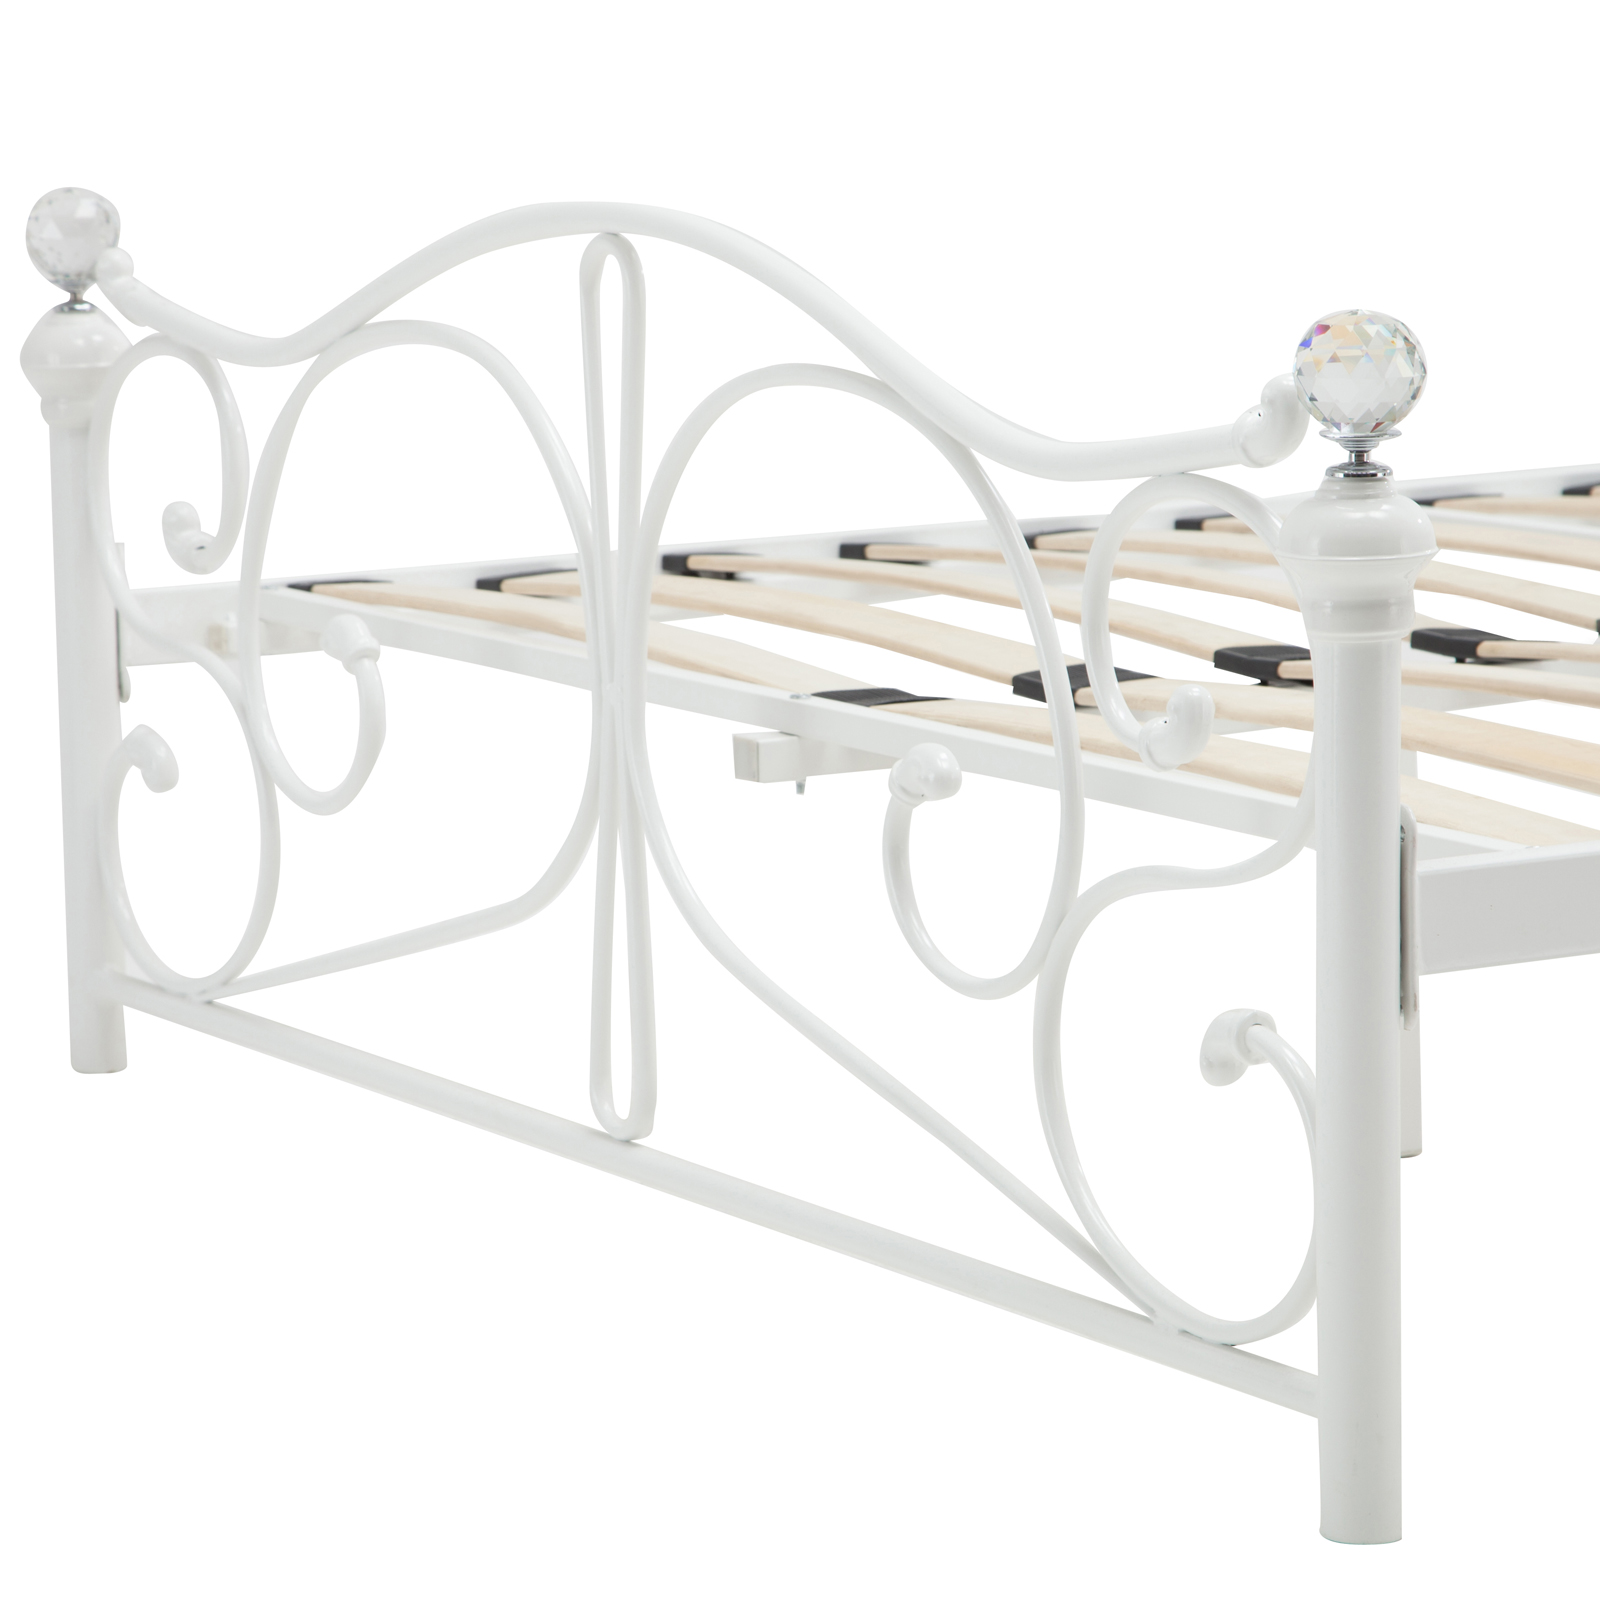 New Full Size Metal Bed Frame Headboard Footboard Bedroom